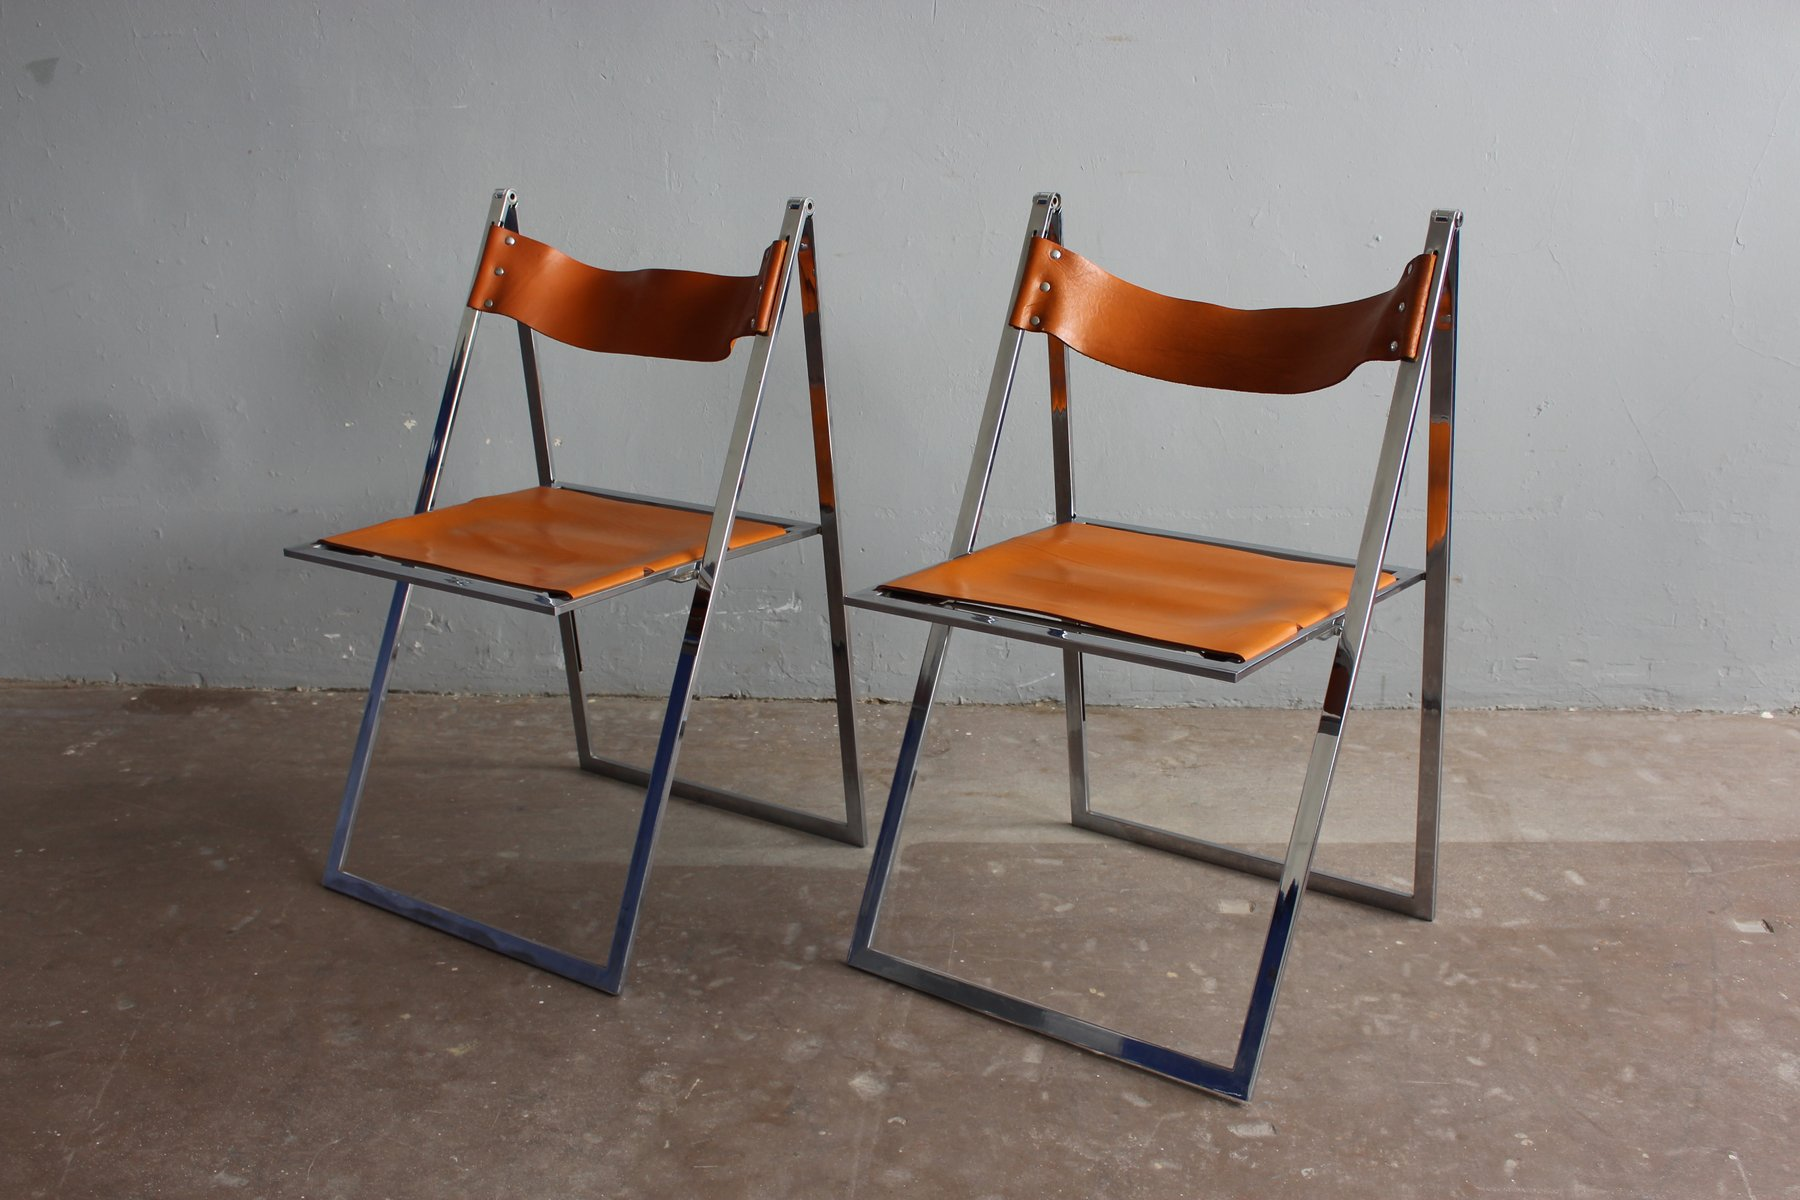 Vintage Folding Chairs By Werksentwurf For Lübke Set Of 2 For Sale At Pamono